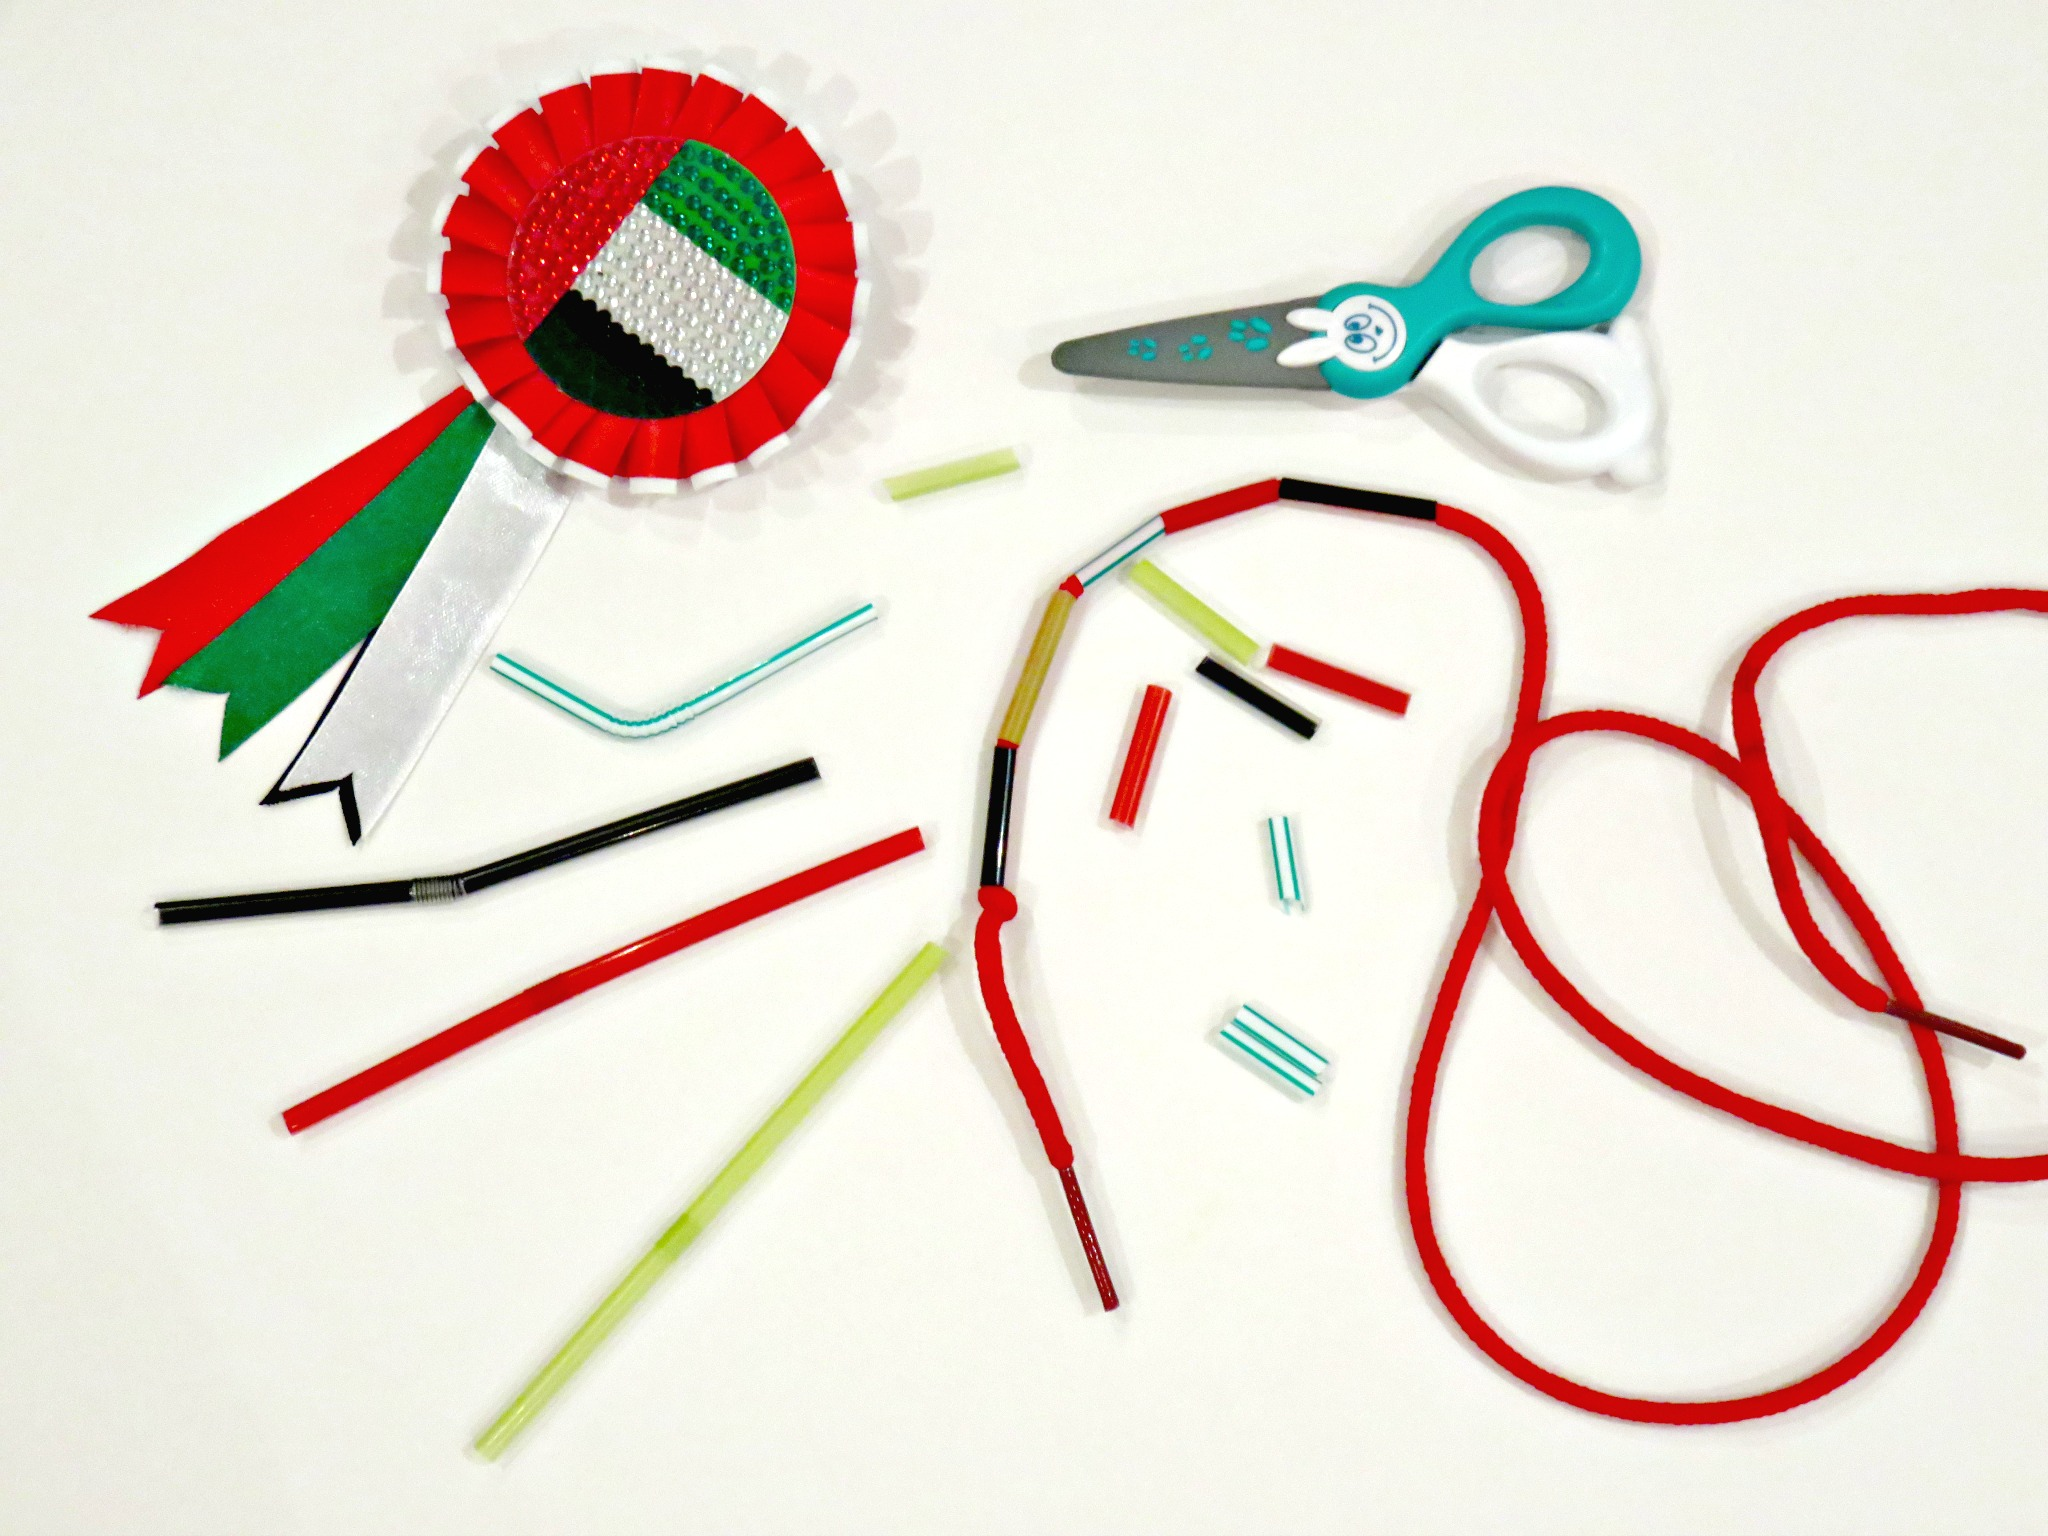 Uae Flag Day Crafts And Activities For Toddlers And Pre